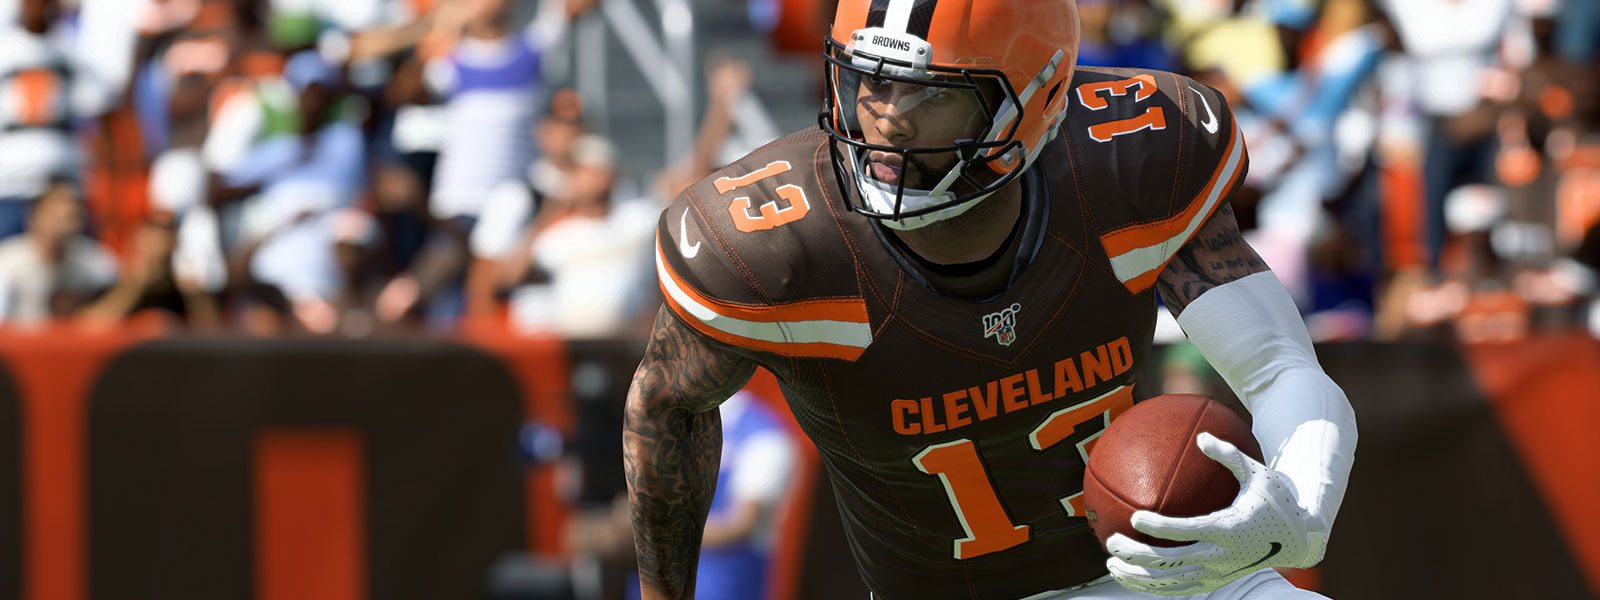 Cleveland Browns-speler Odell Beckham Jr. met football